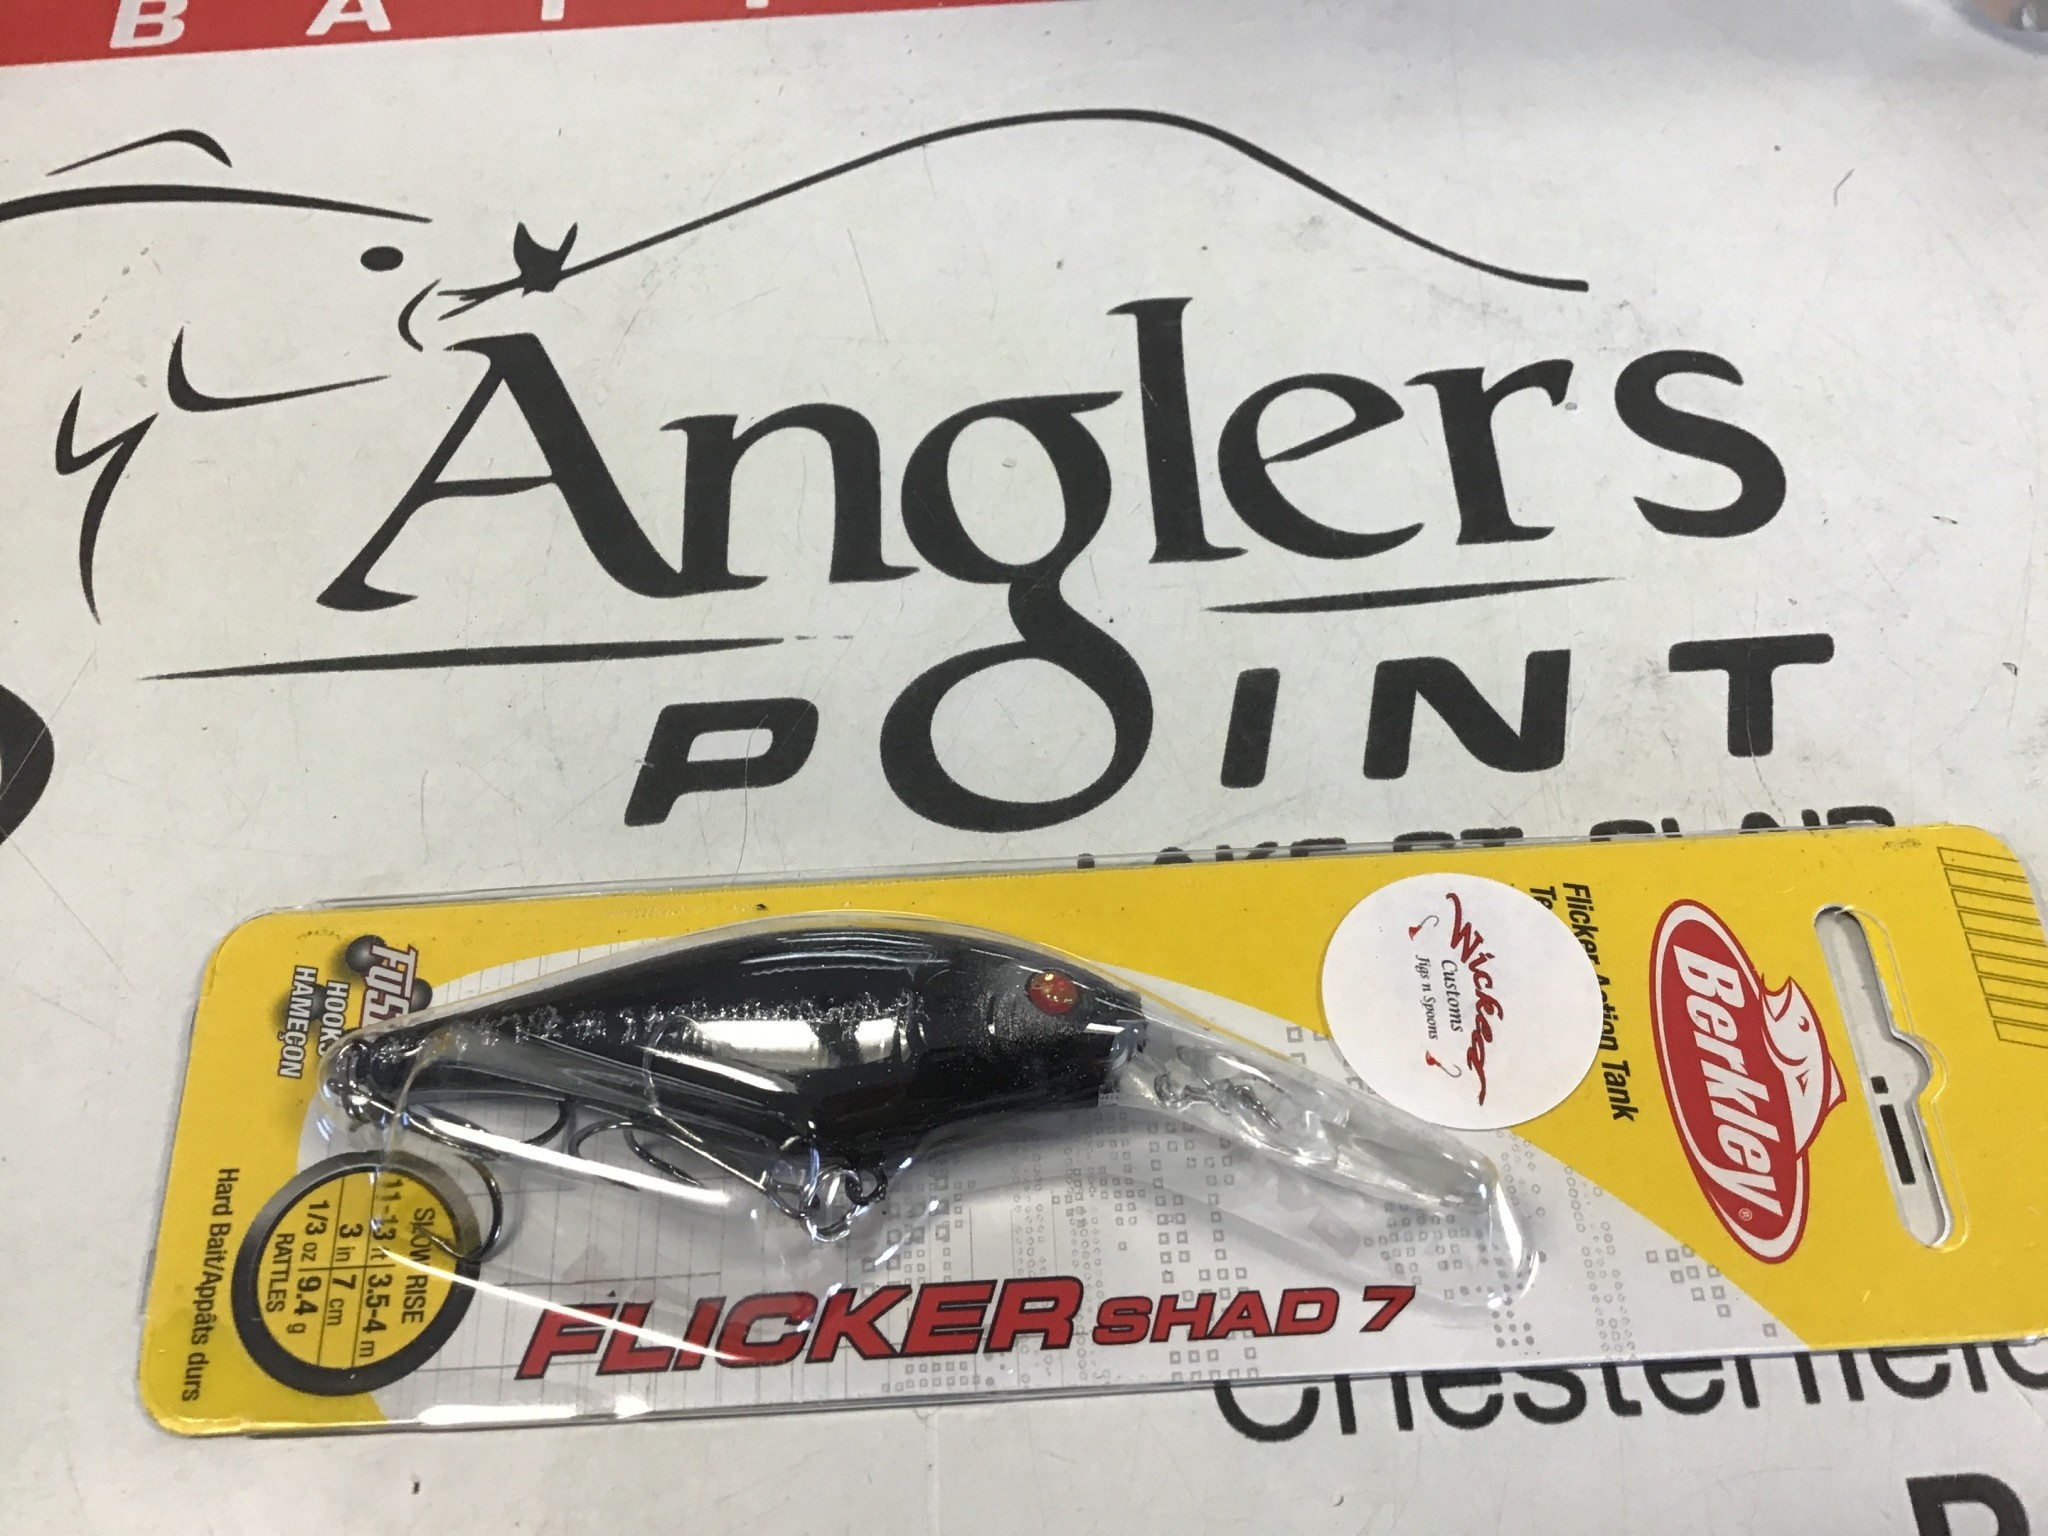 WCustom Flicker Shad #7 #418